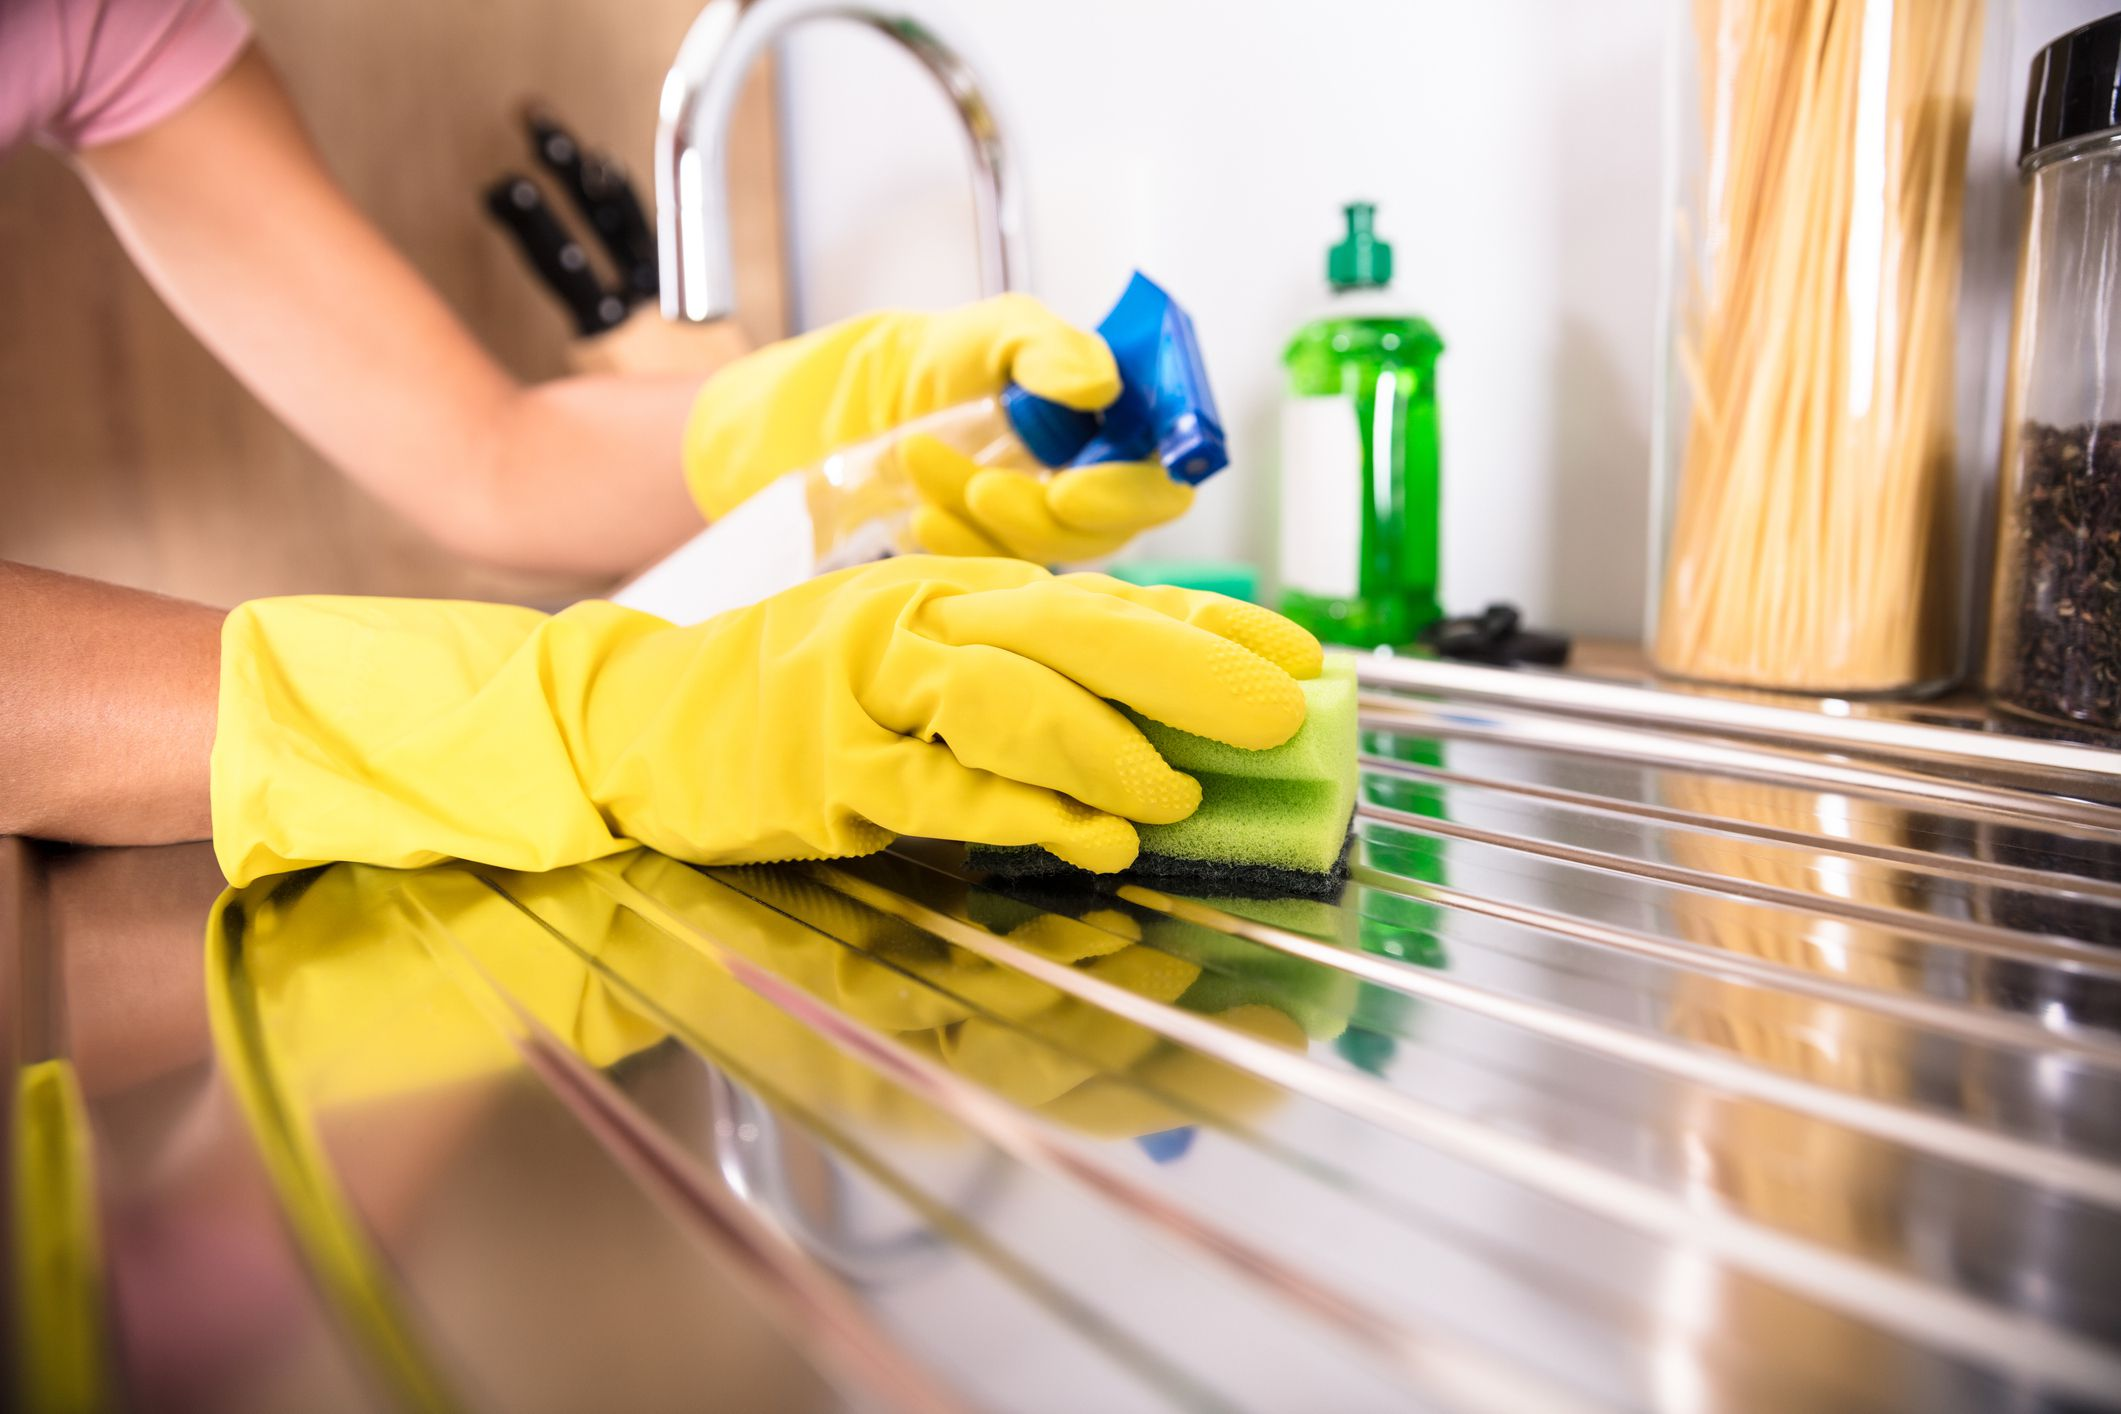 The 9 Best Stainless Steel Cleaners Of 2020